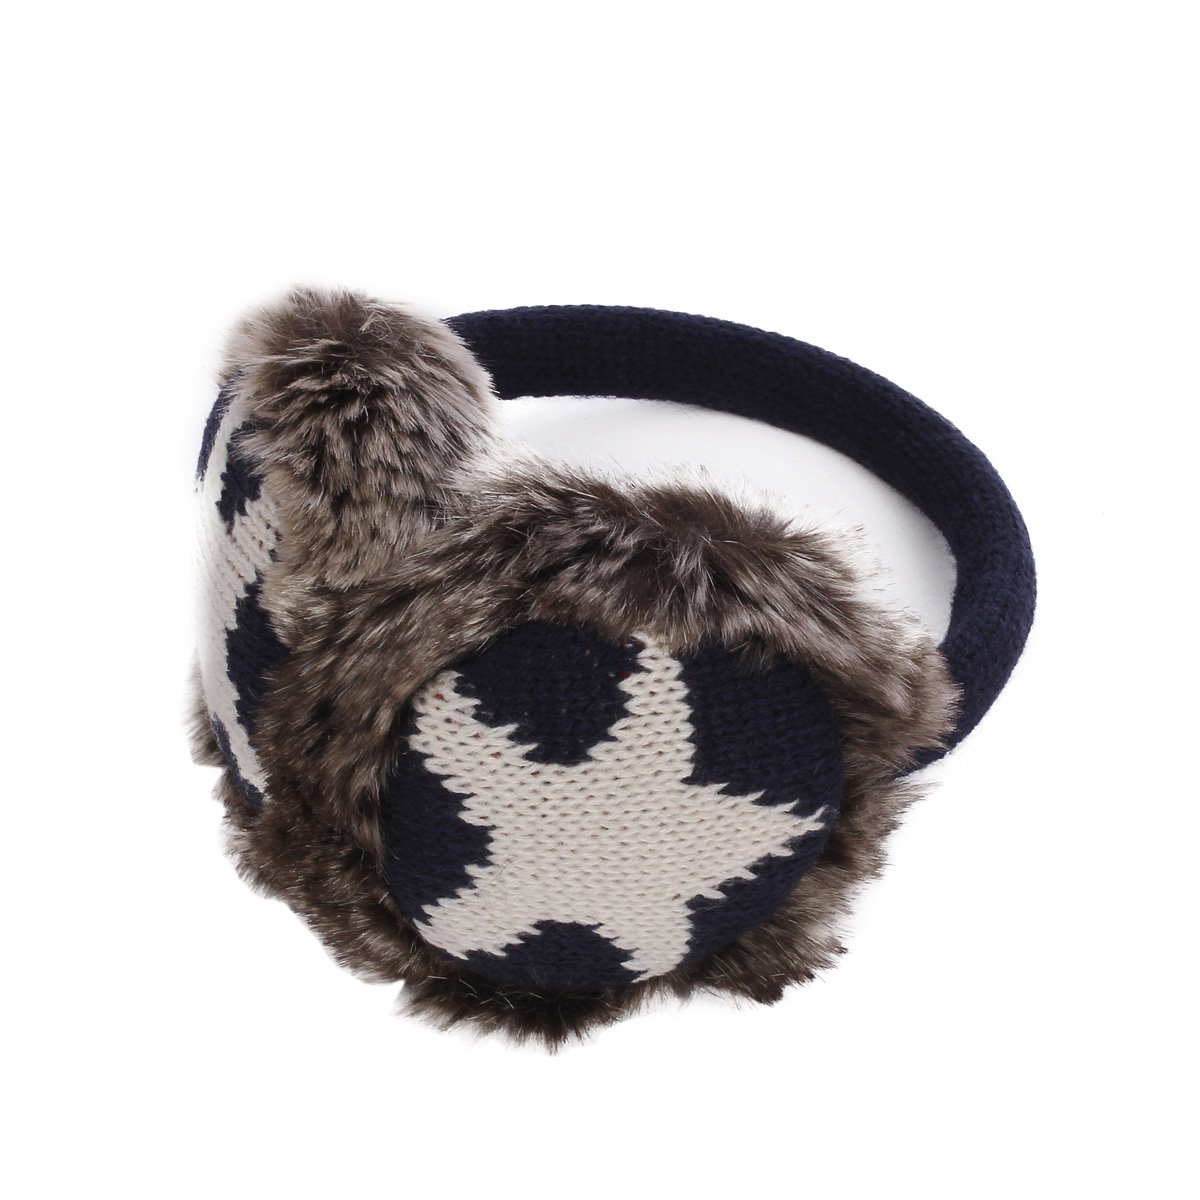 Winter Soft Faux Fur Adjustable Star Earmuffs Ear Warmers EM141US